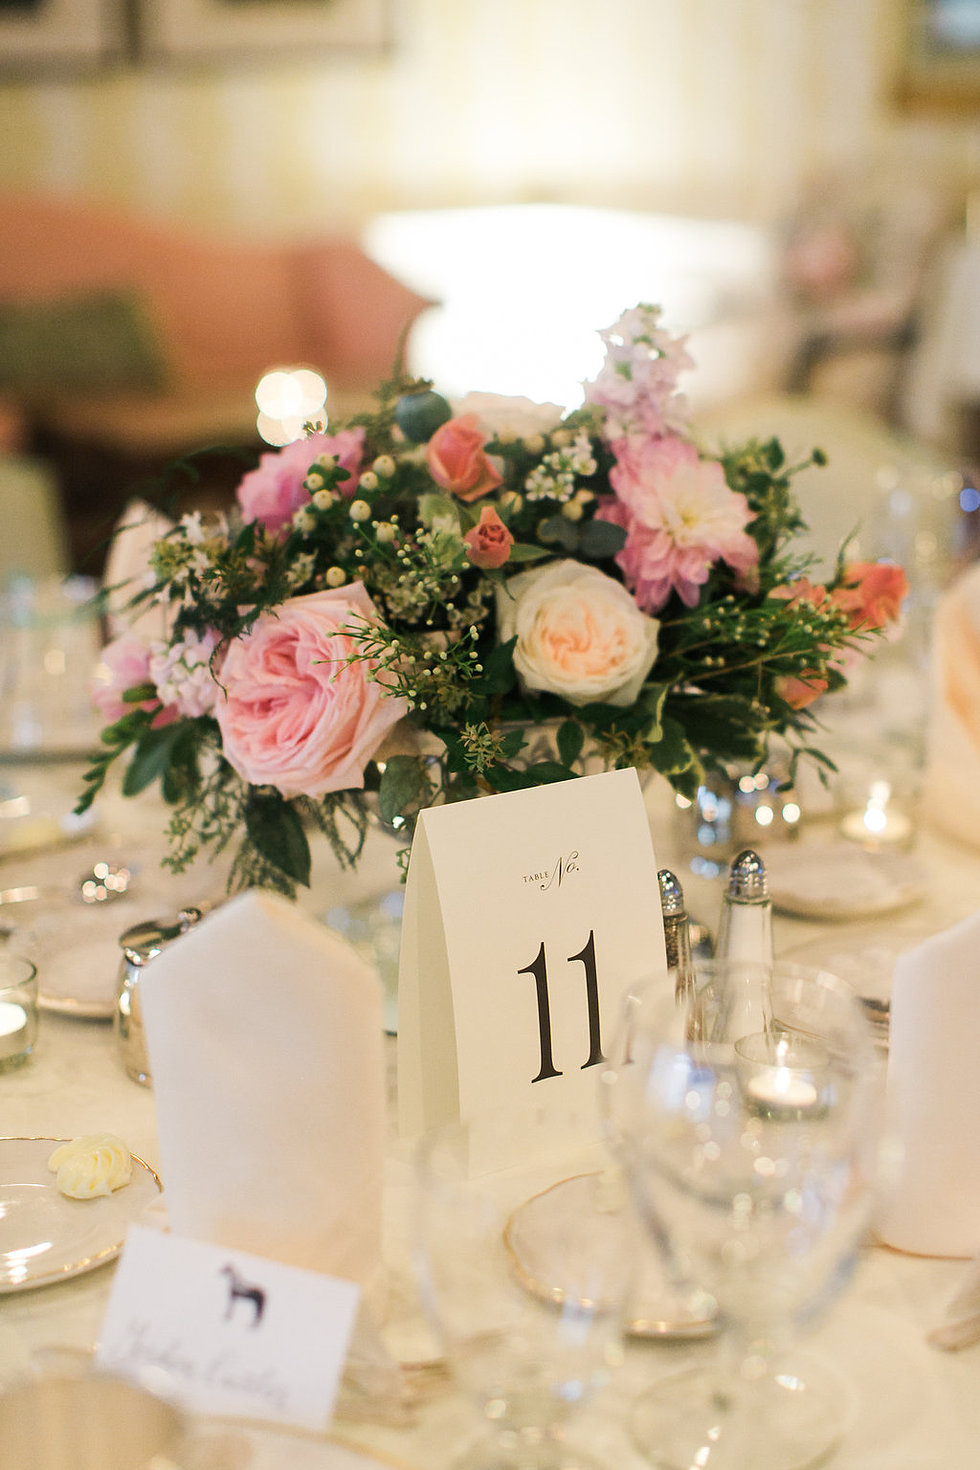 floral arrangement at a table setting